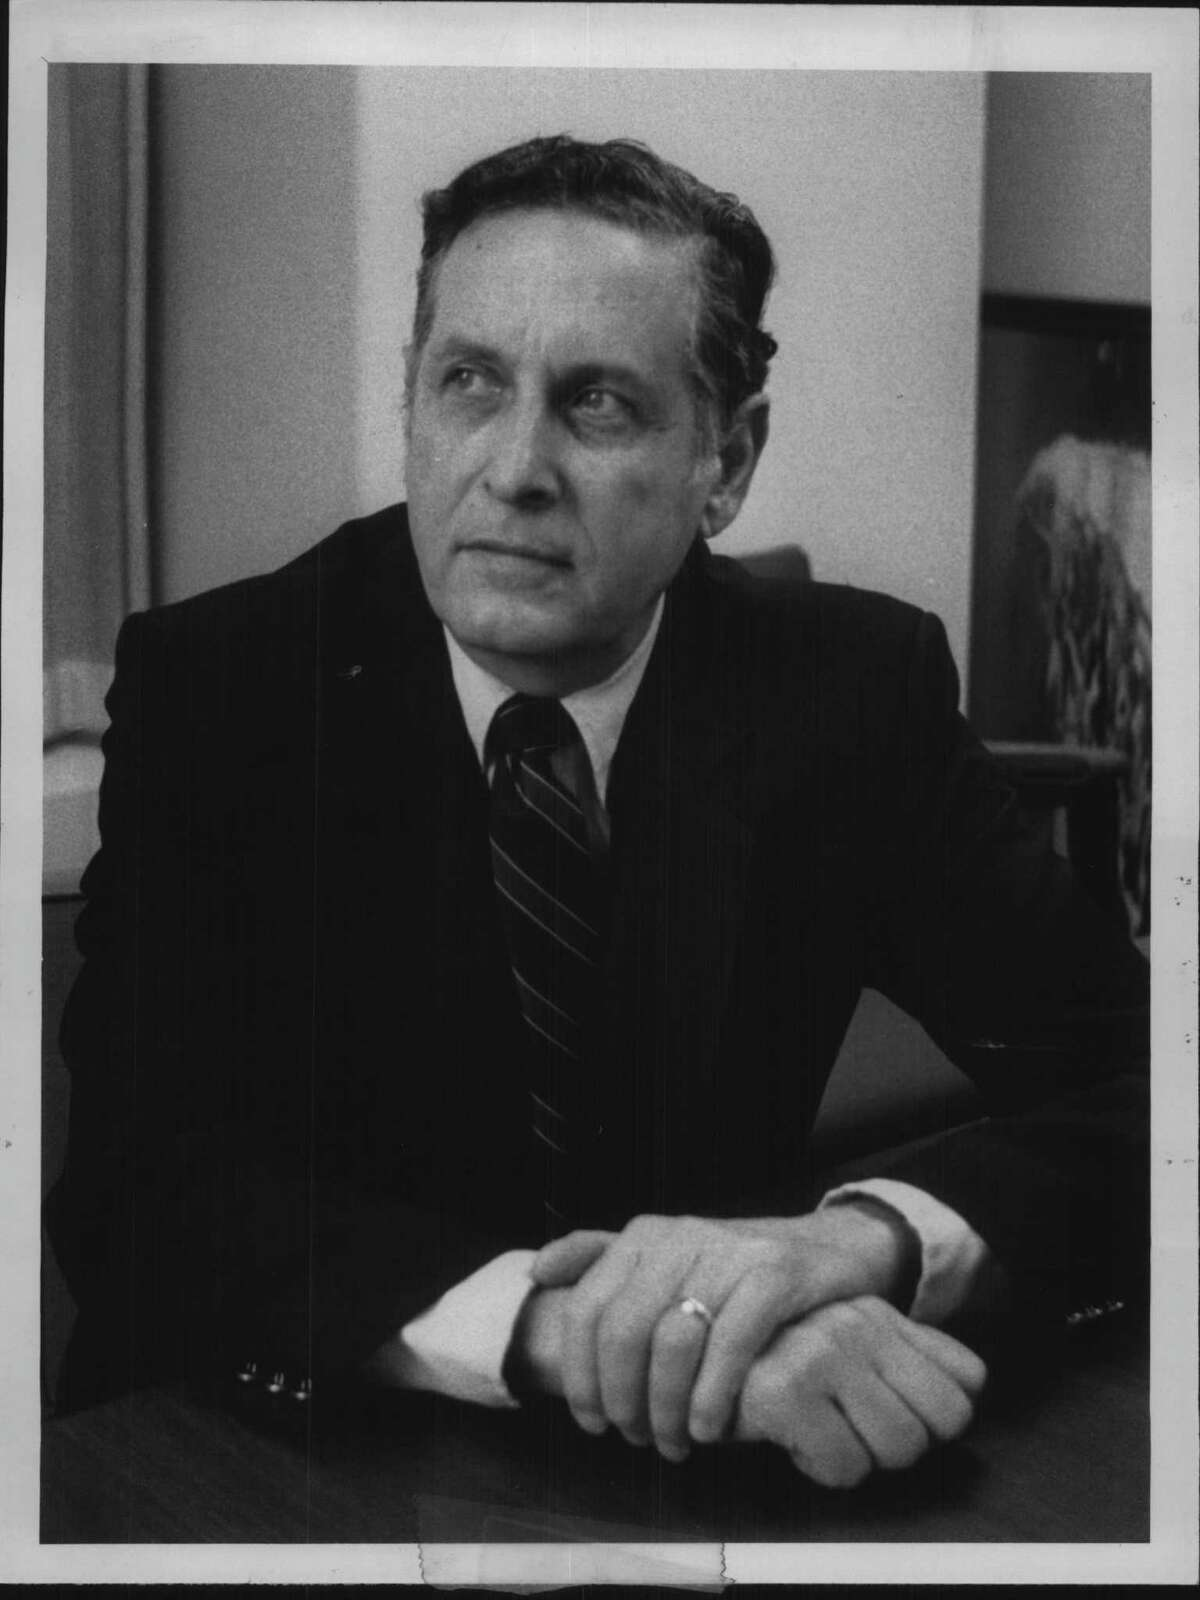 Harold Rubin, a founder of the Council of Albany Neighborhood Associations, died at age 93 on Nov. 24, 2020. (Roberta Smith/Times Union Archive)